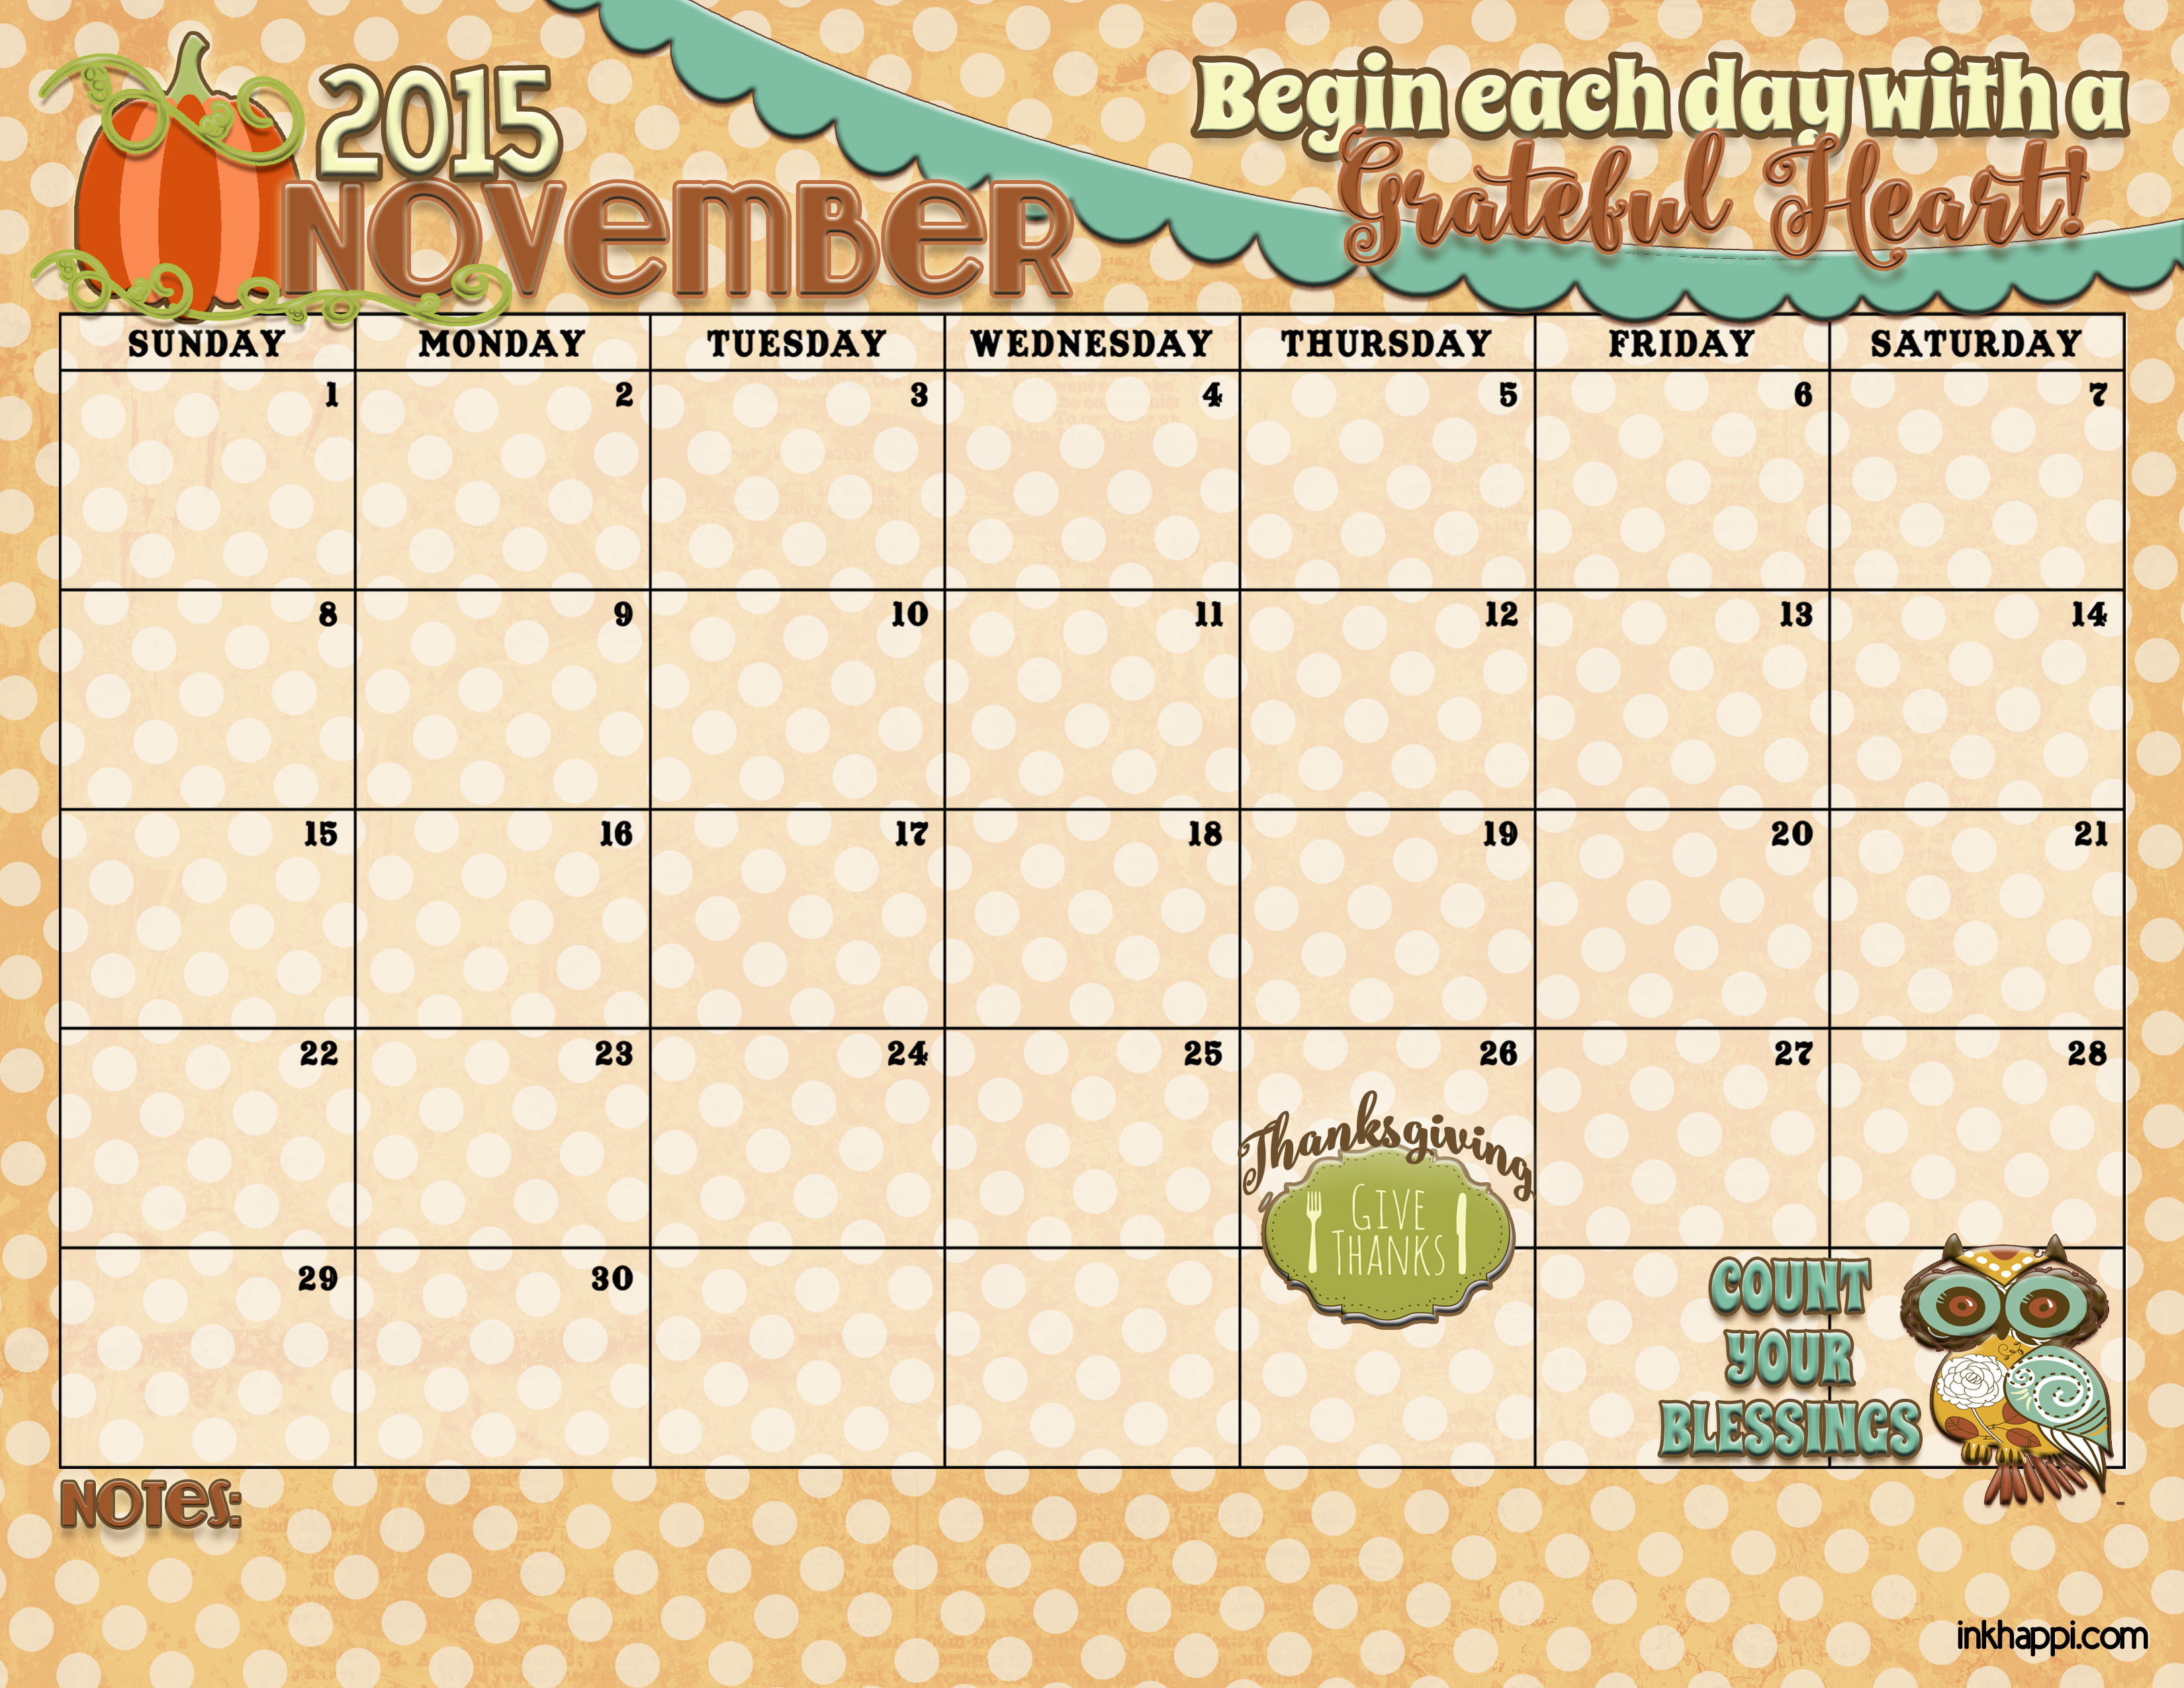 November 2015 Calendar Is Available At Inkhappi!  Inkhappi with November Decorated Calendar